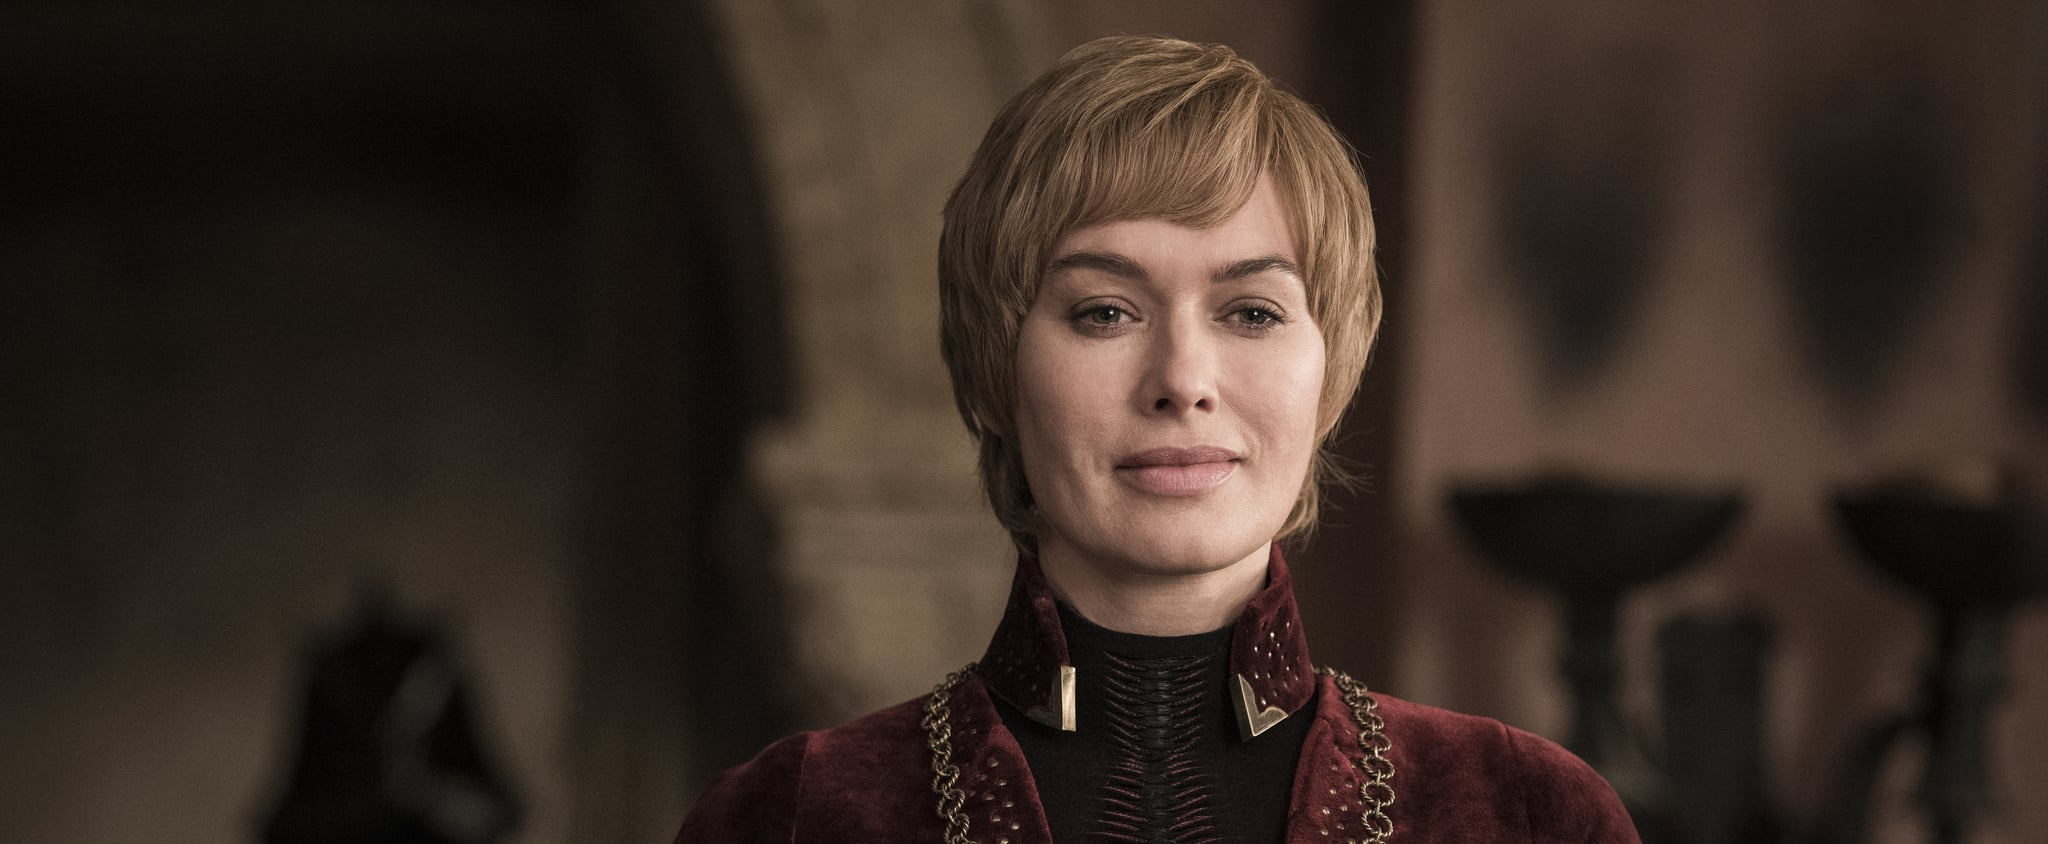 Deleted Game of Thrones Scene About Cersei's Miscarriage